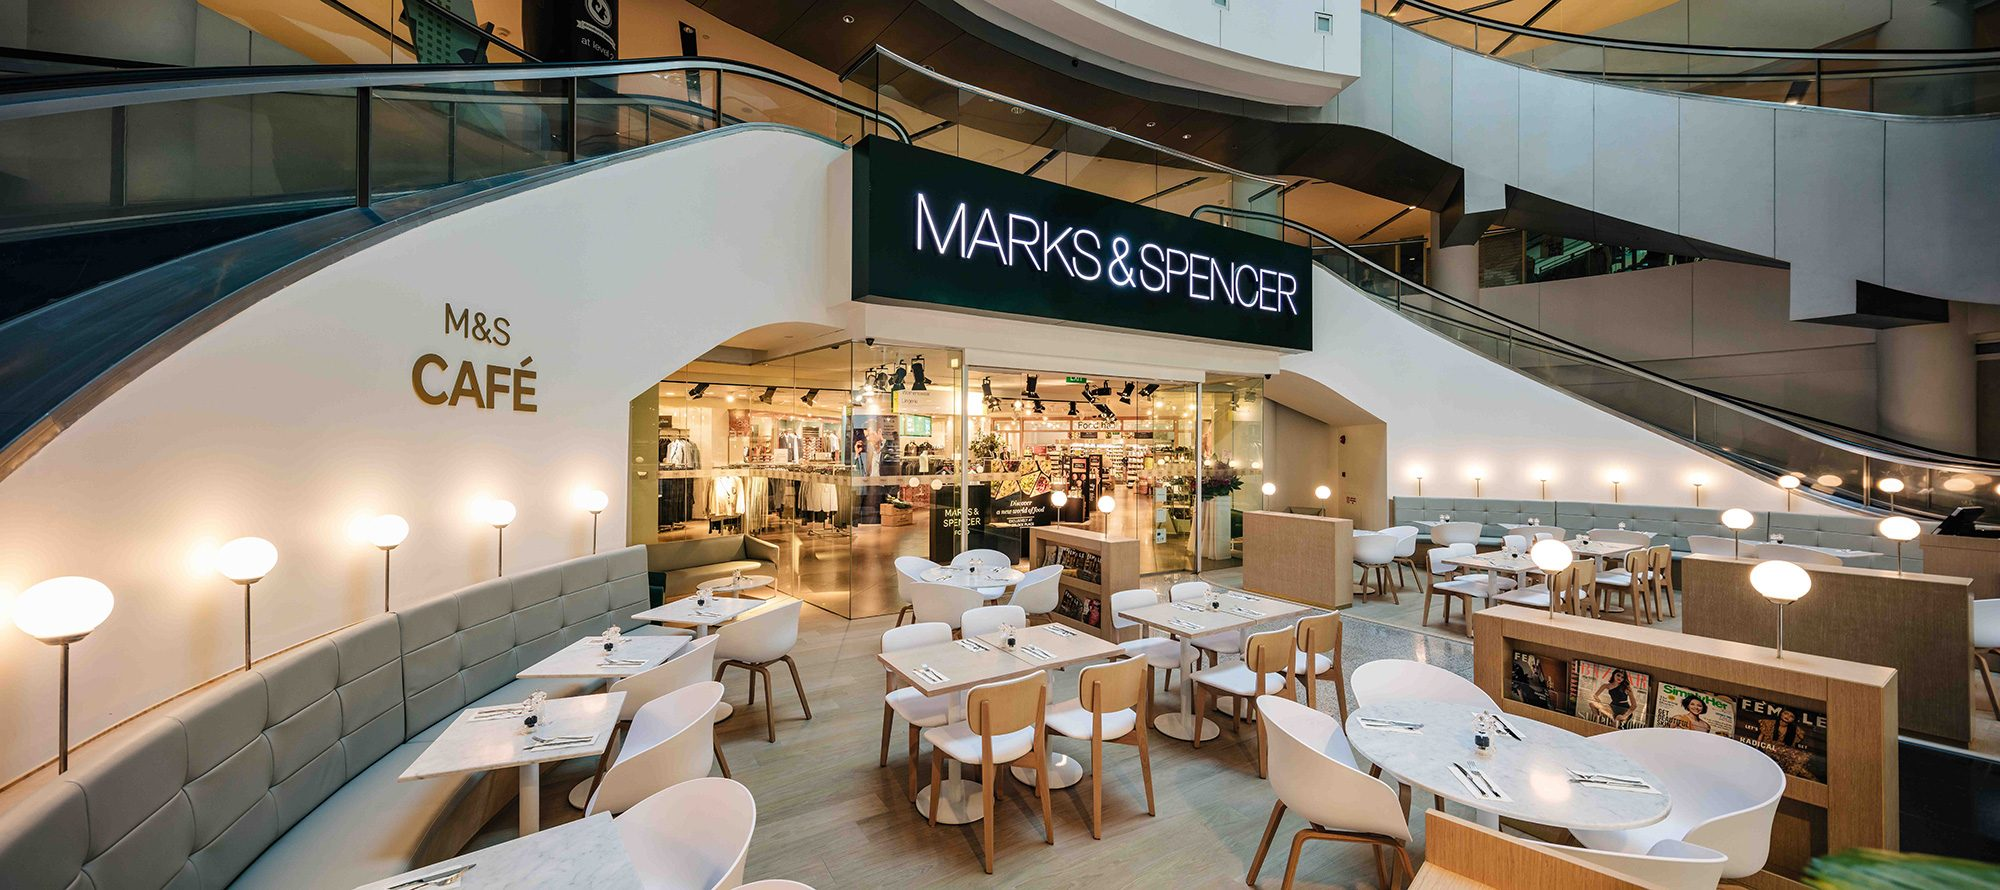 #-Marks-&-Spencer-Cafe-Wheelock-Place---1